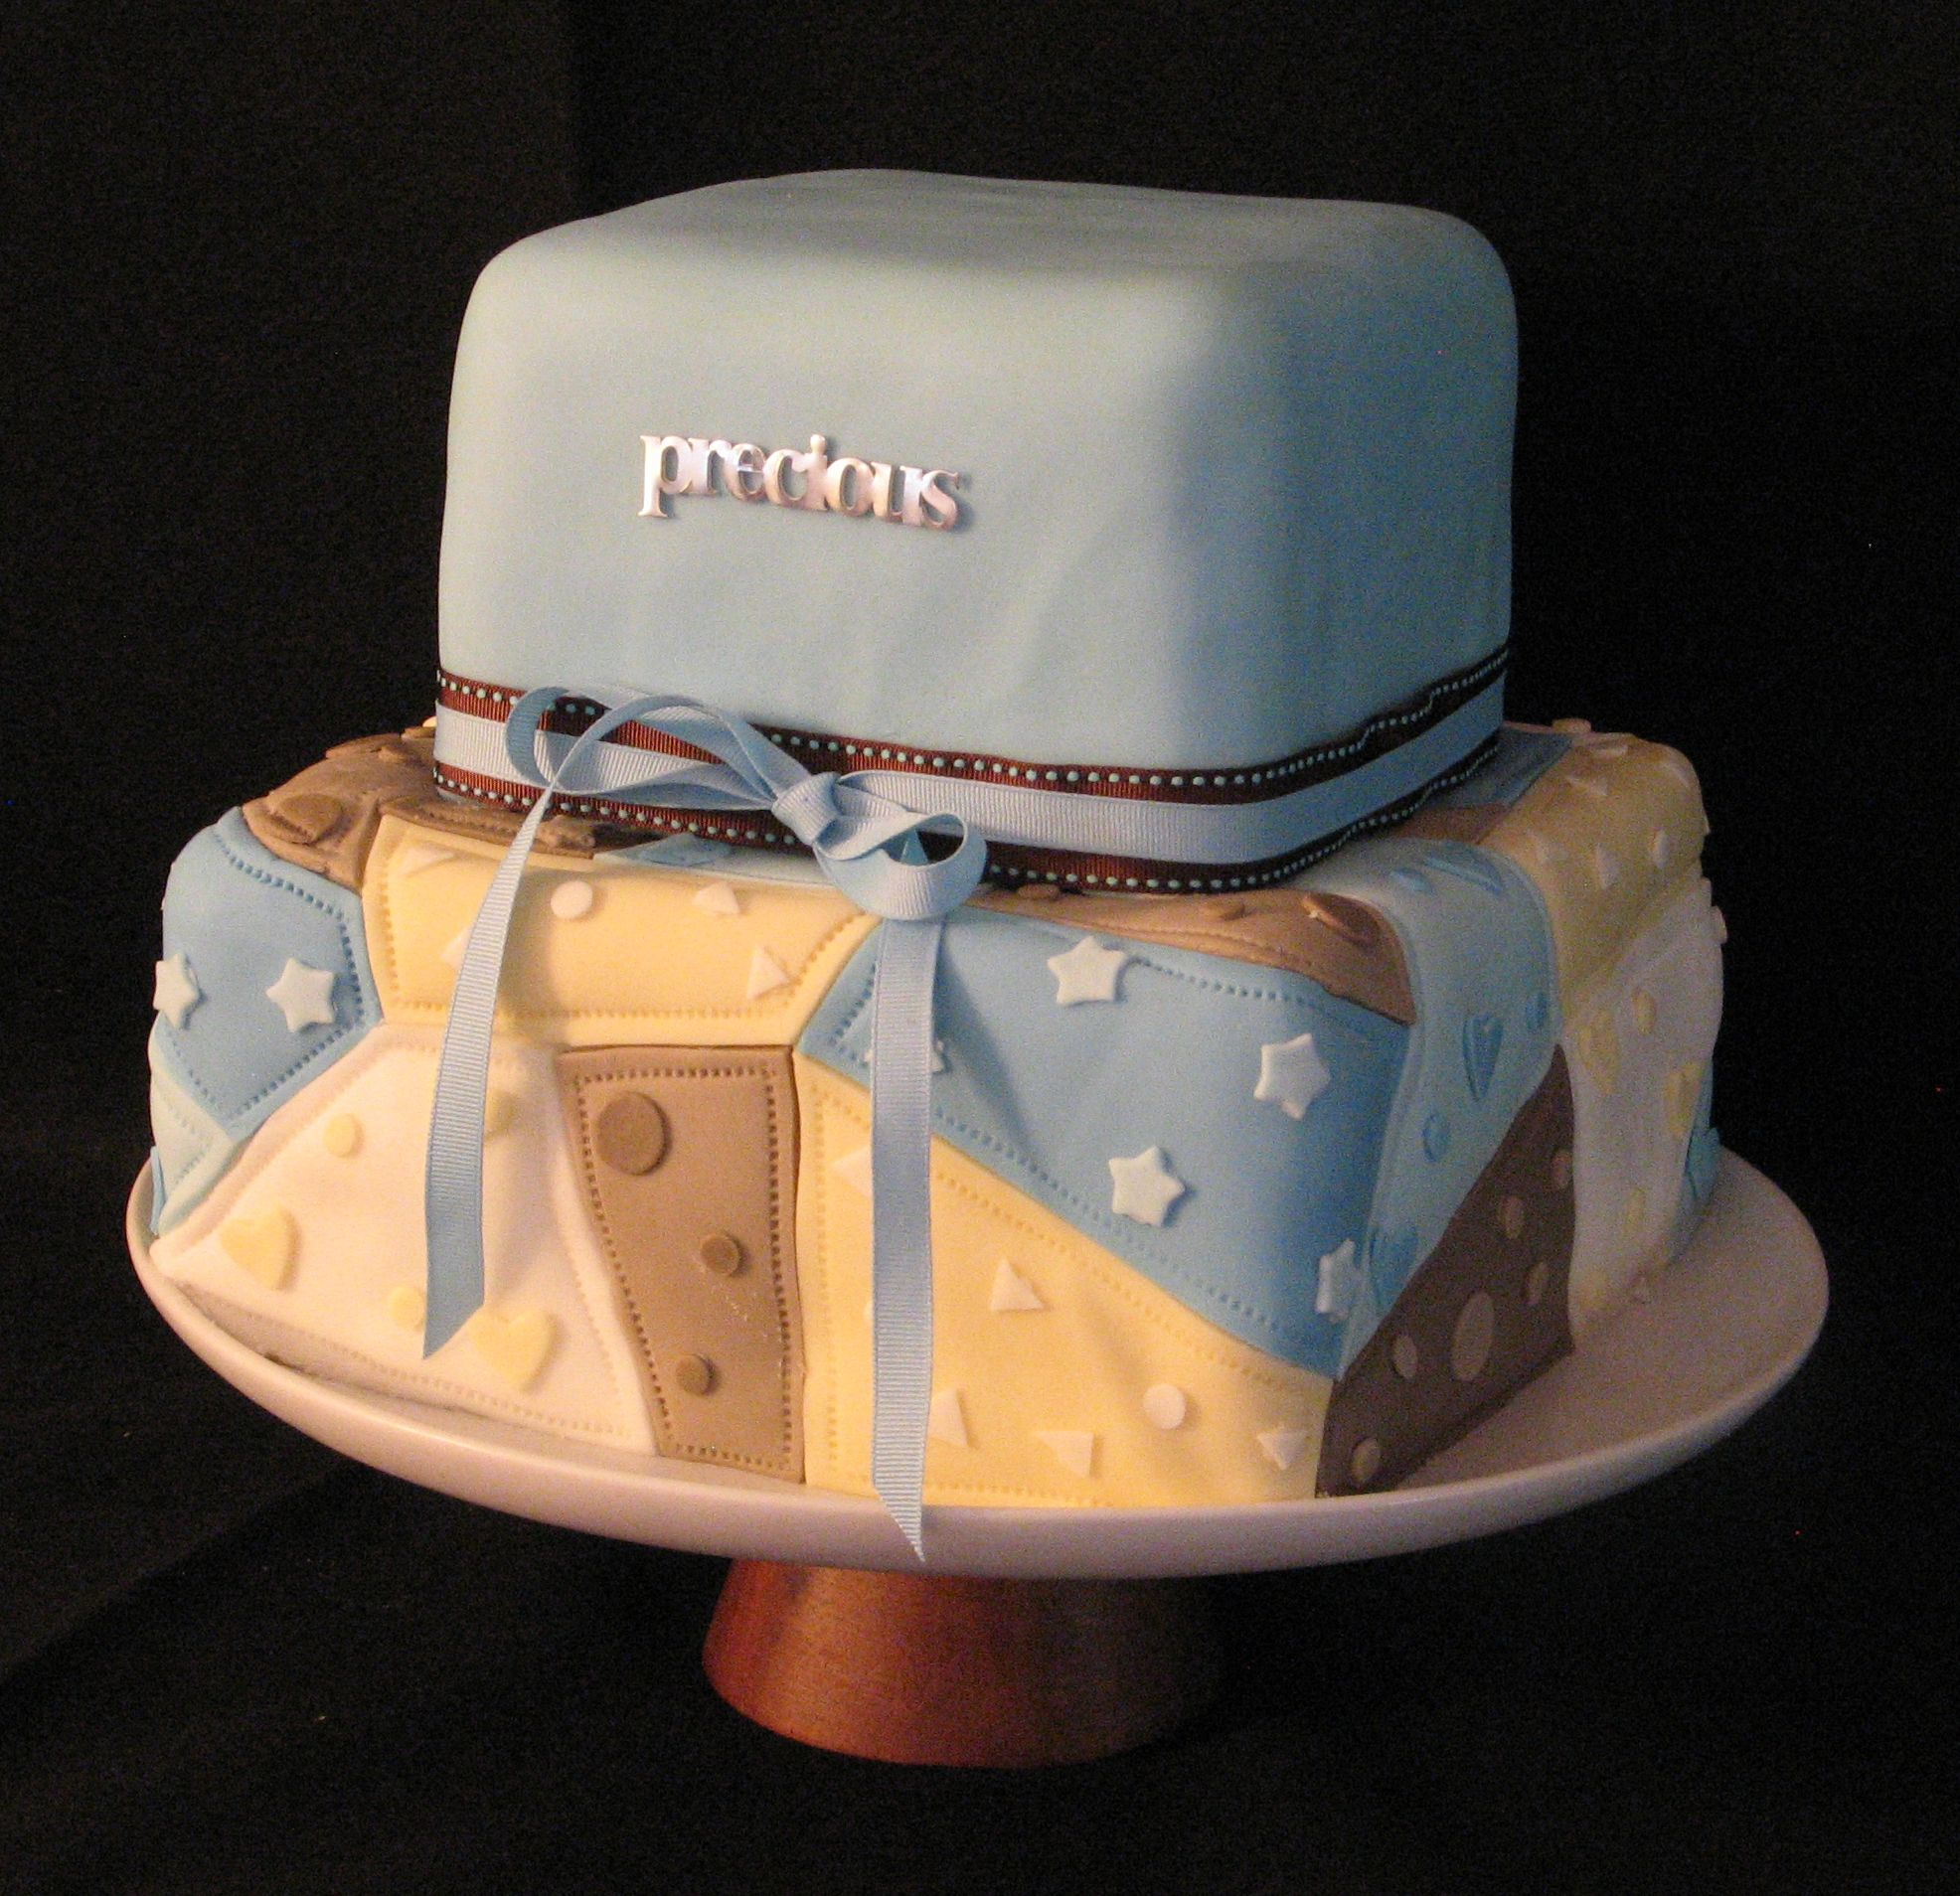 Where Creativity and Cakes Collide!   Flying B Cakes makes Custom Cakes for Every Occasion! We are based in Beaverton, Oregon and serve the Greater Portland Area.  http://www.flyingbcakes.com